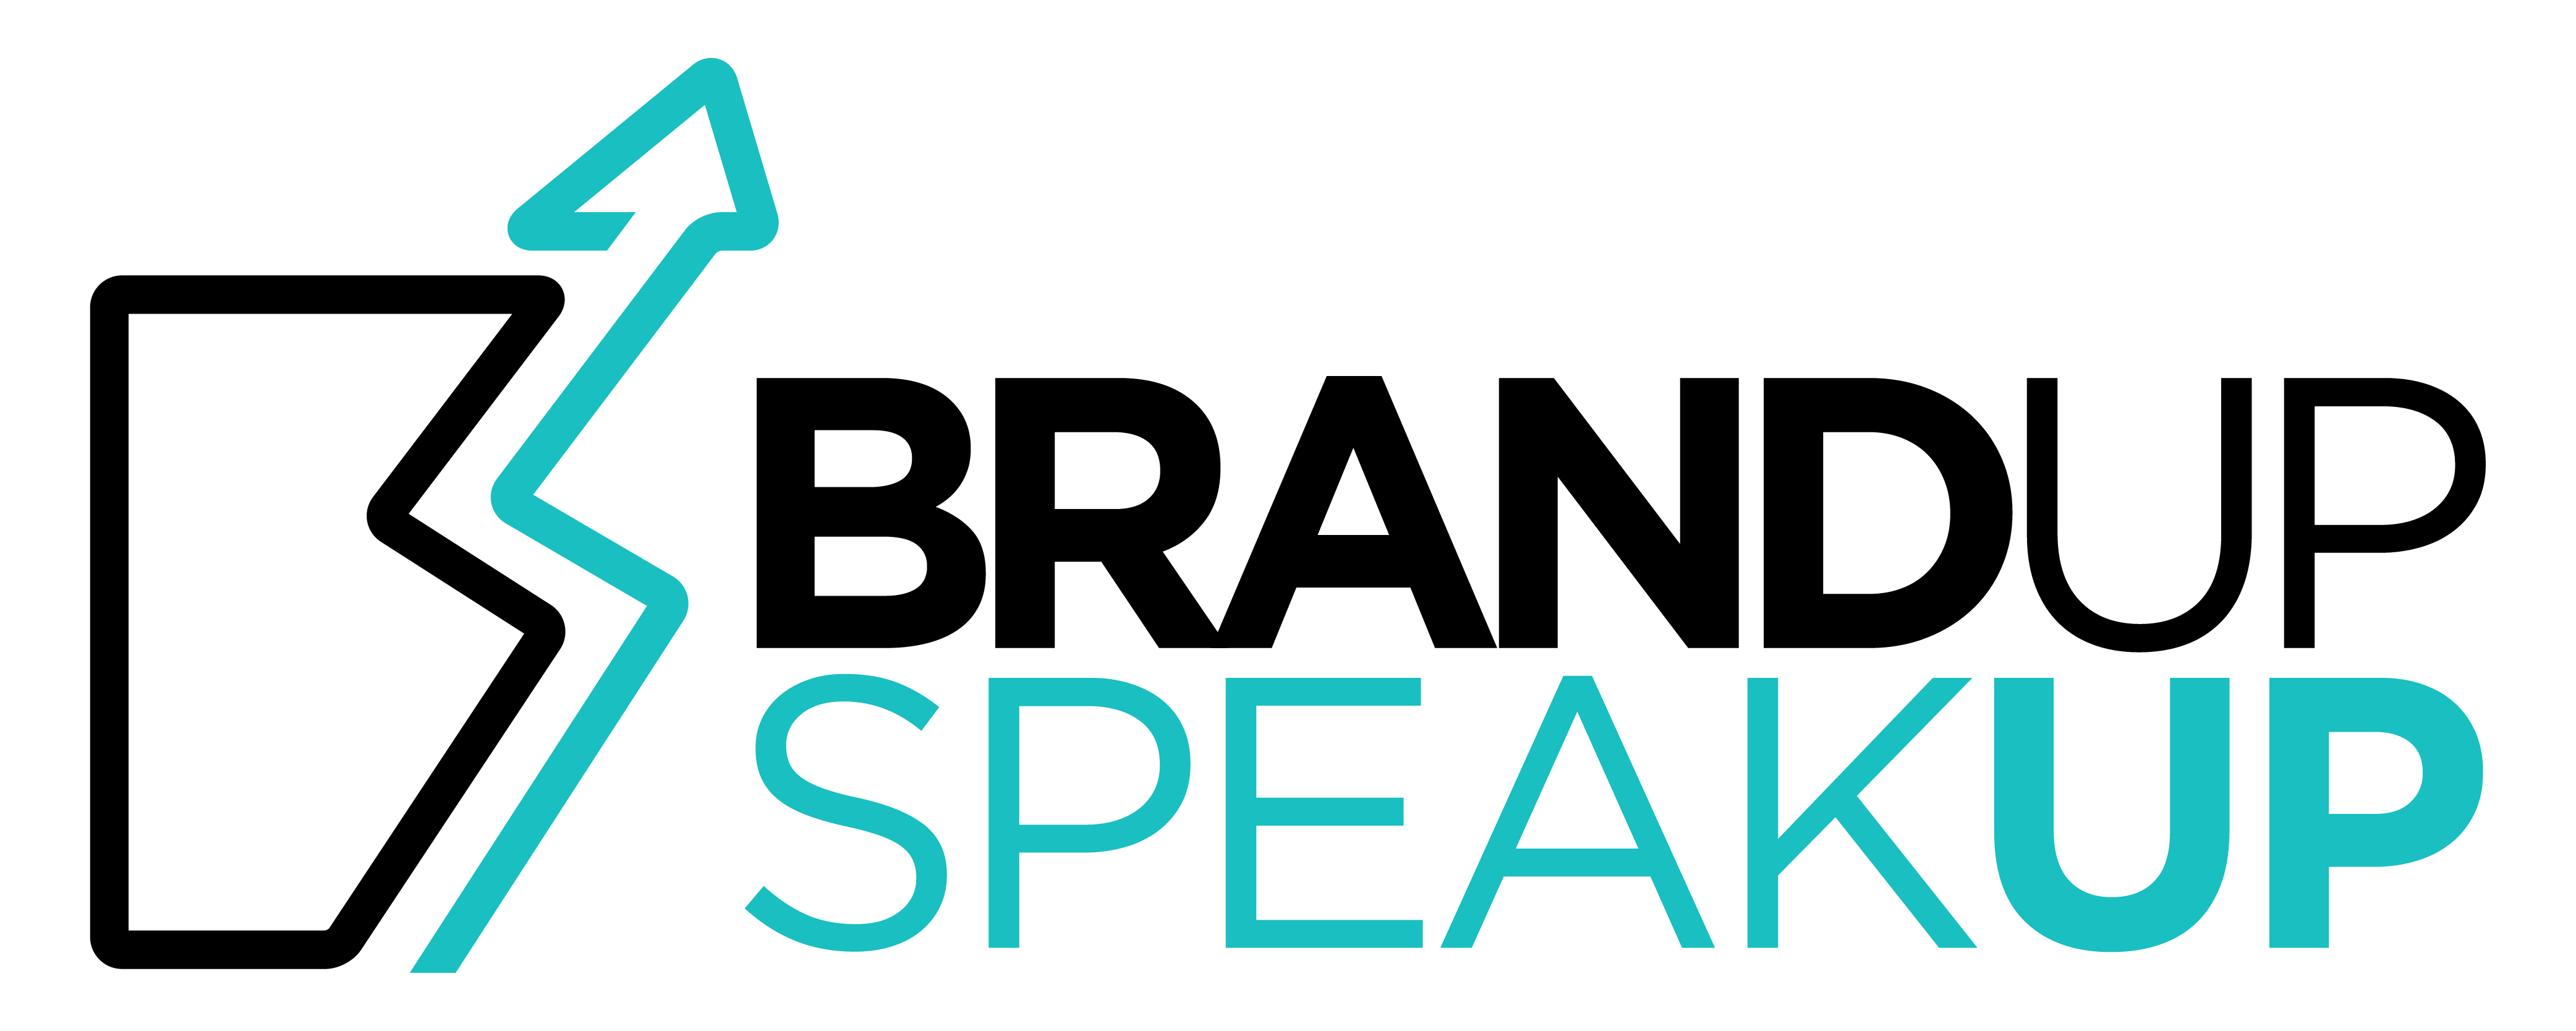 Brand Up Speak Up Logo